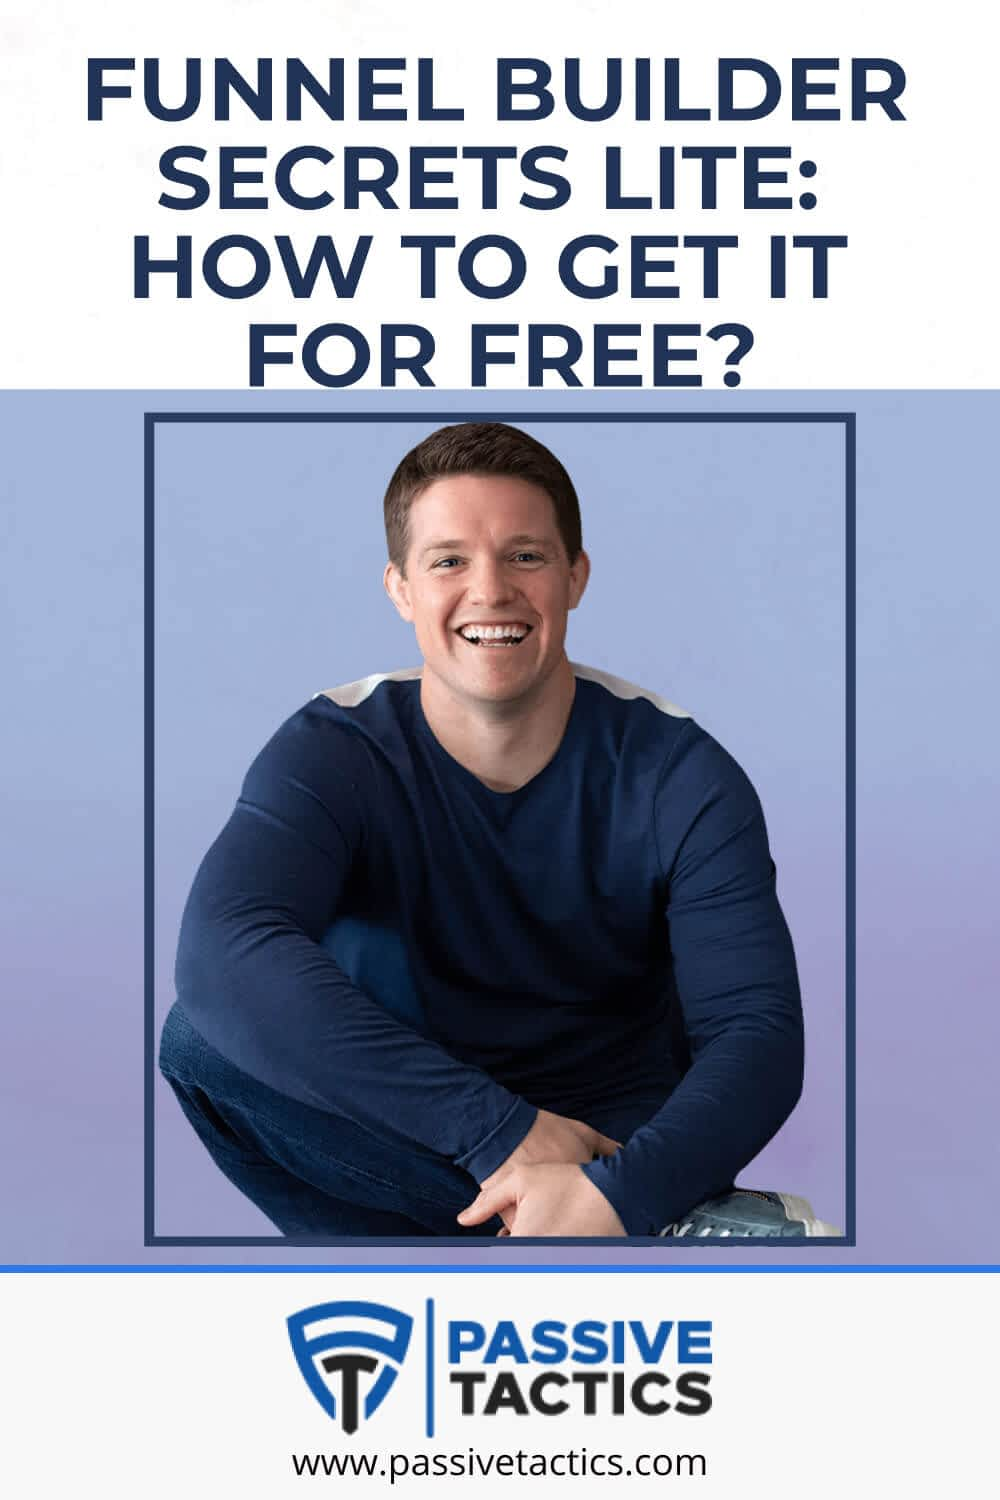 Funnel Builder Secrets Lite: How To Get It For Free?